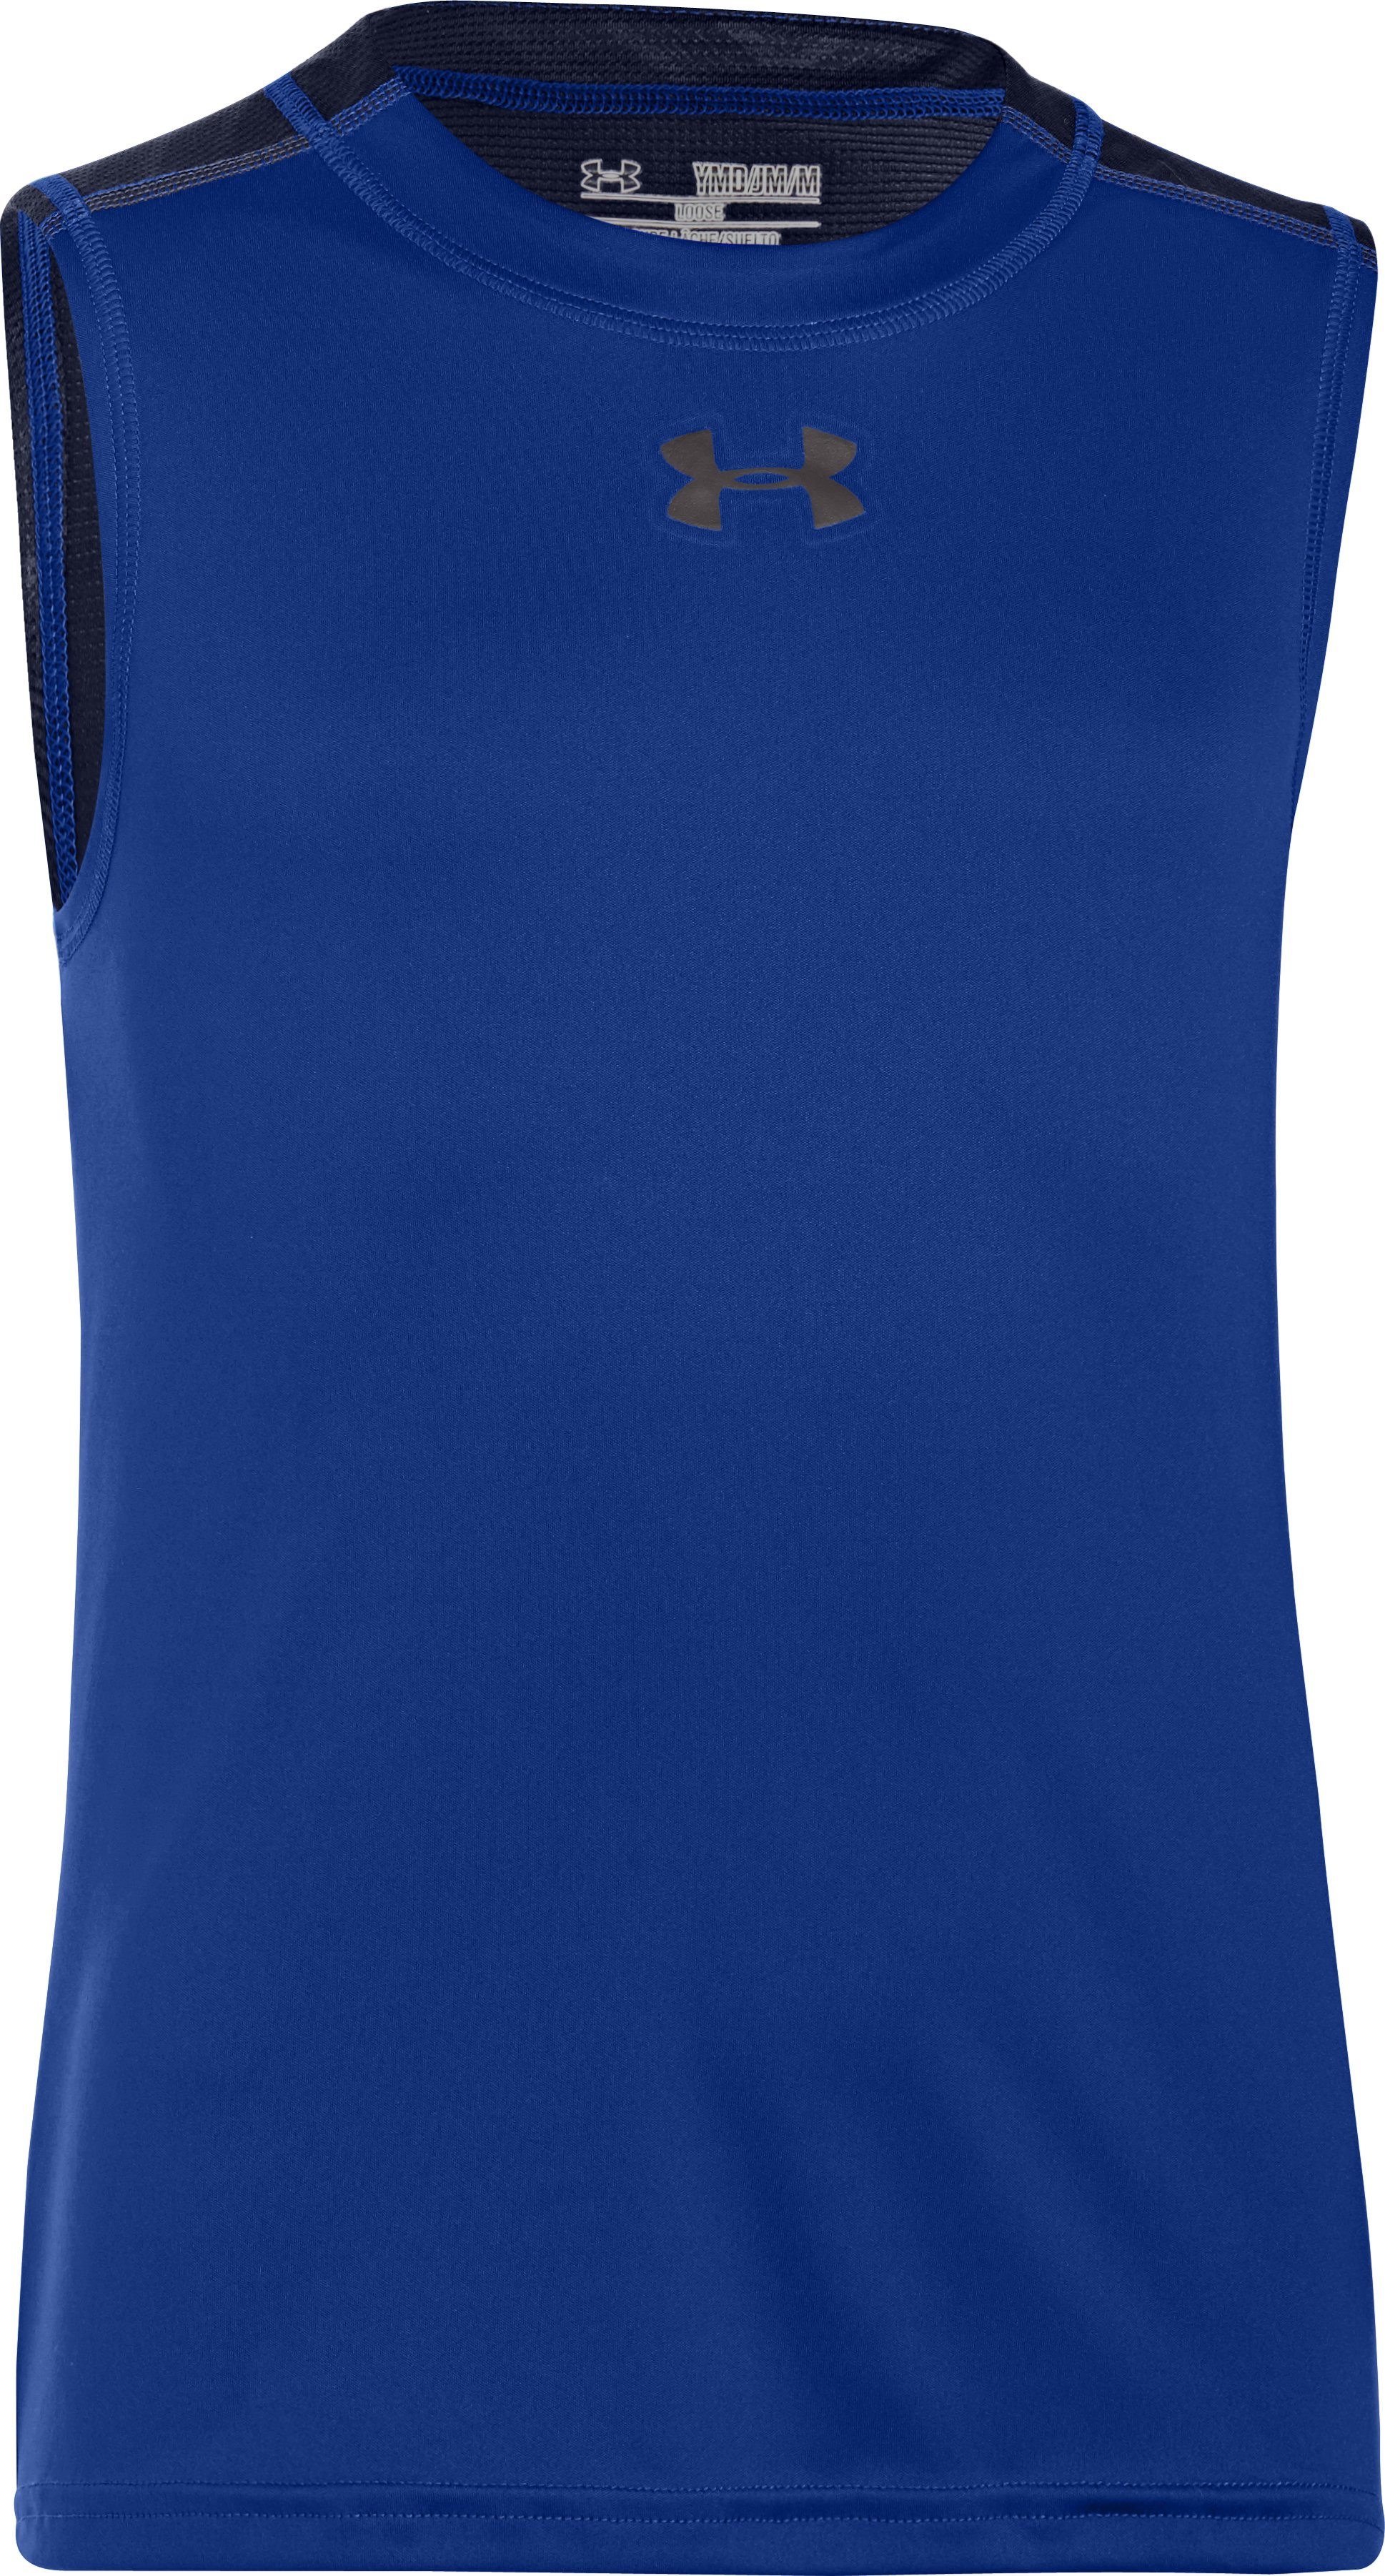 Boys' UA Next Level Basketball Tank, Royal